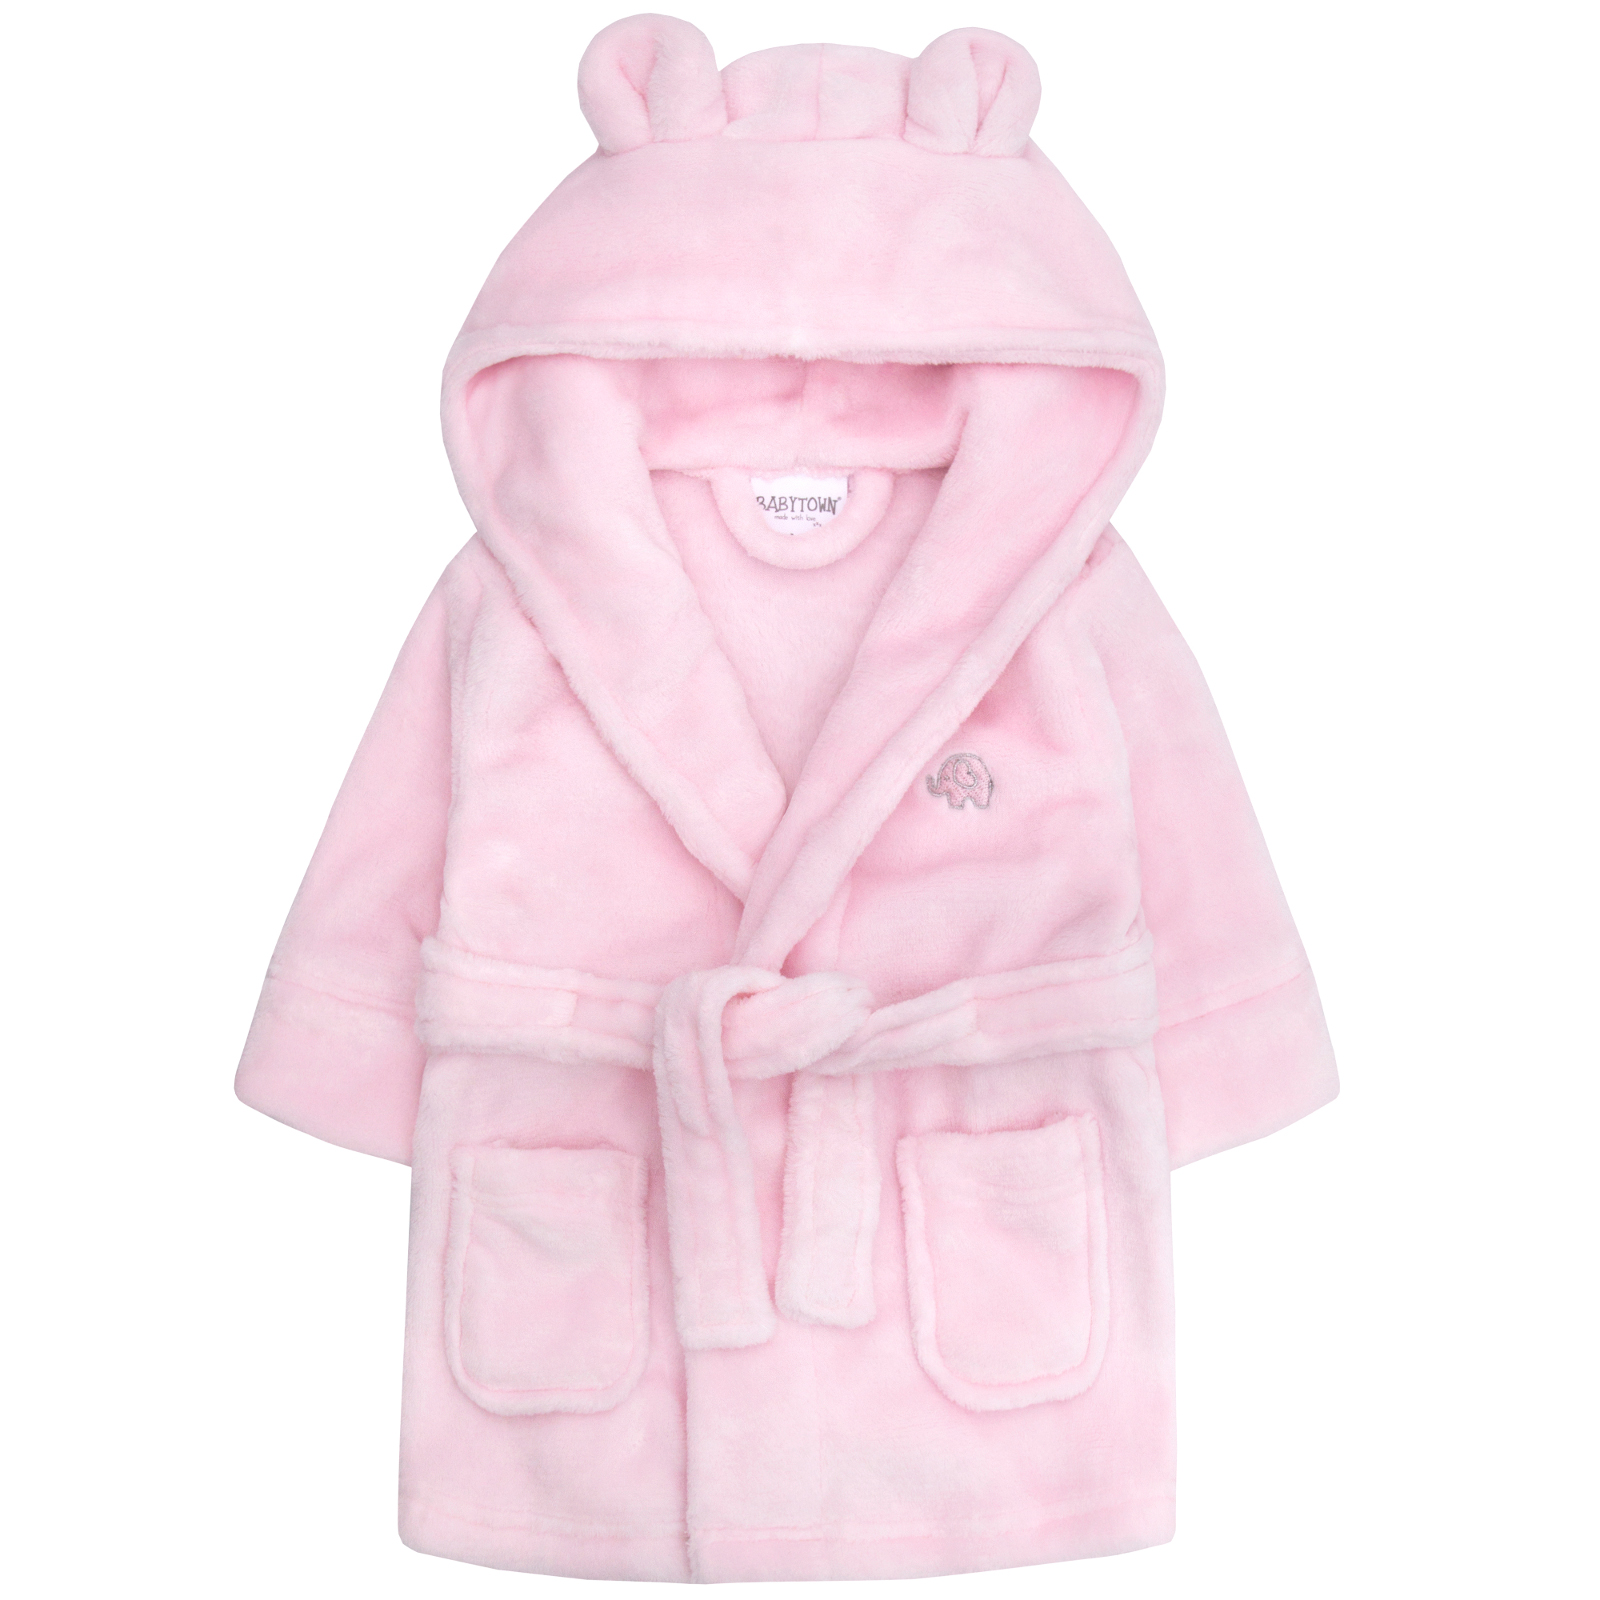 a1c851a82 Baby Girls Hooded Fleece Dressing Gown Supersoft Bath Robe Towel ...